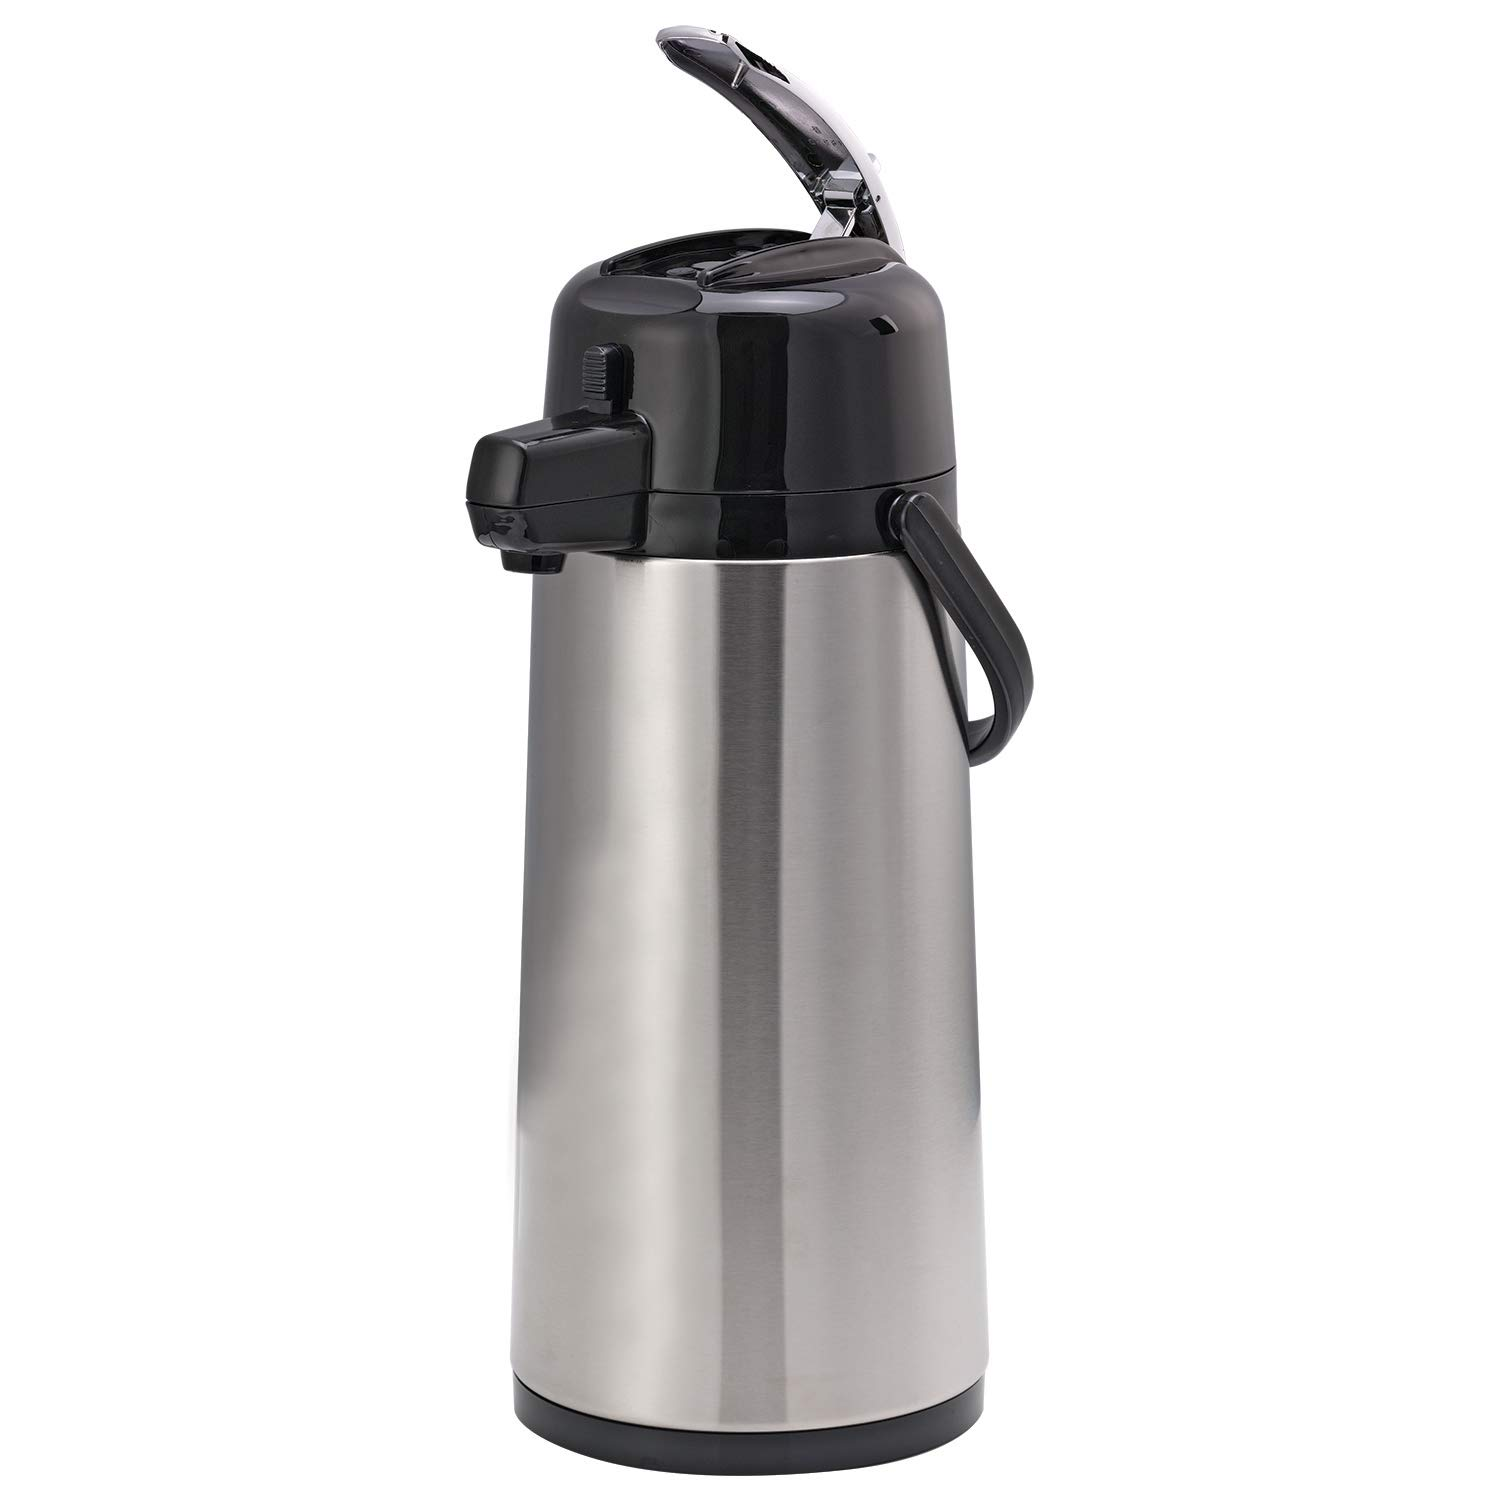 Service Ideas ECALS22SS Eco-Air Airpot with Lever, Stainless Steel Lined, 2.4 L, Brushed Stainless/Black Accents